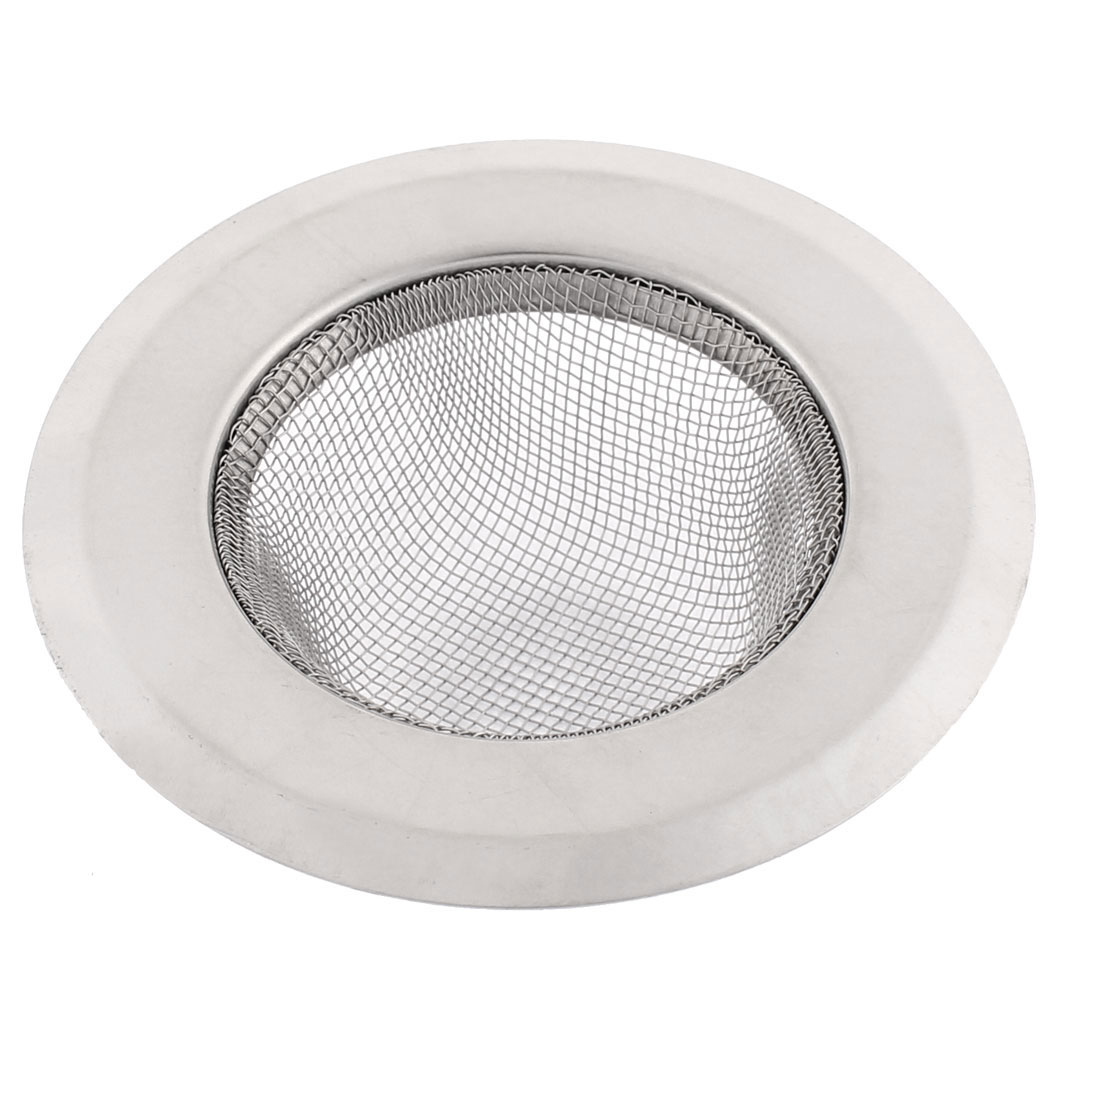 Bathroom Stainless Steel Sink Basin Waste Drainer Strainer Filter 9cm Outer Dia